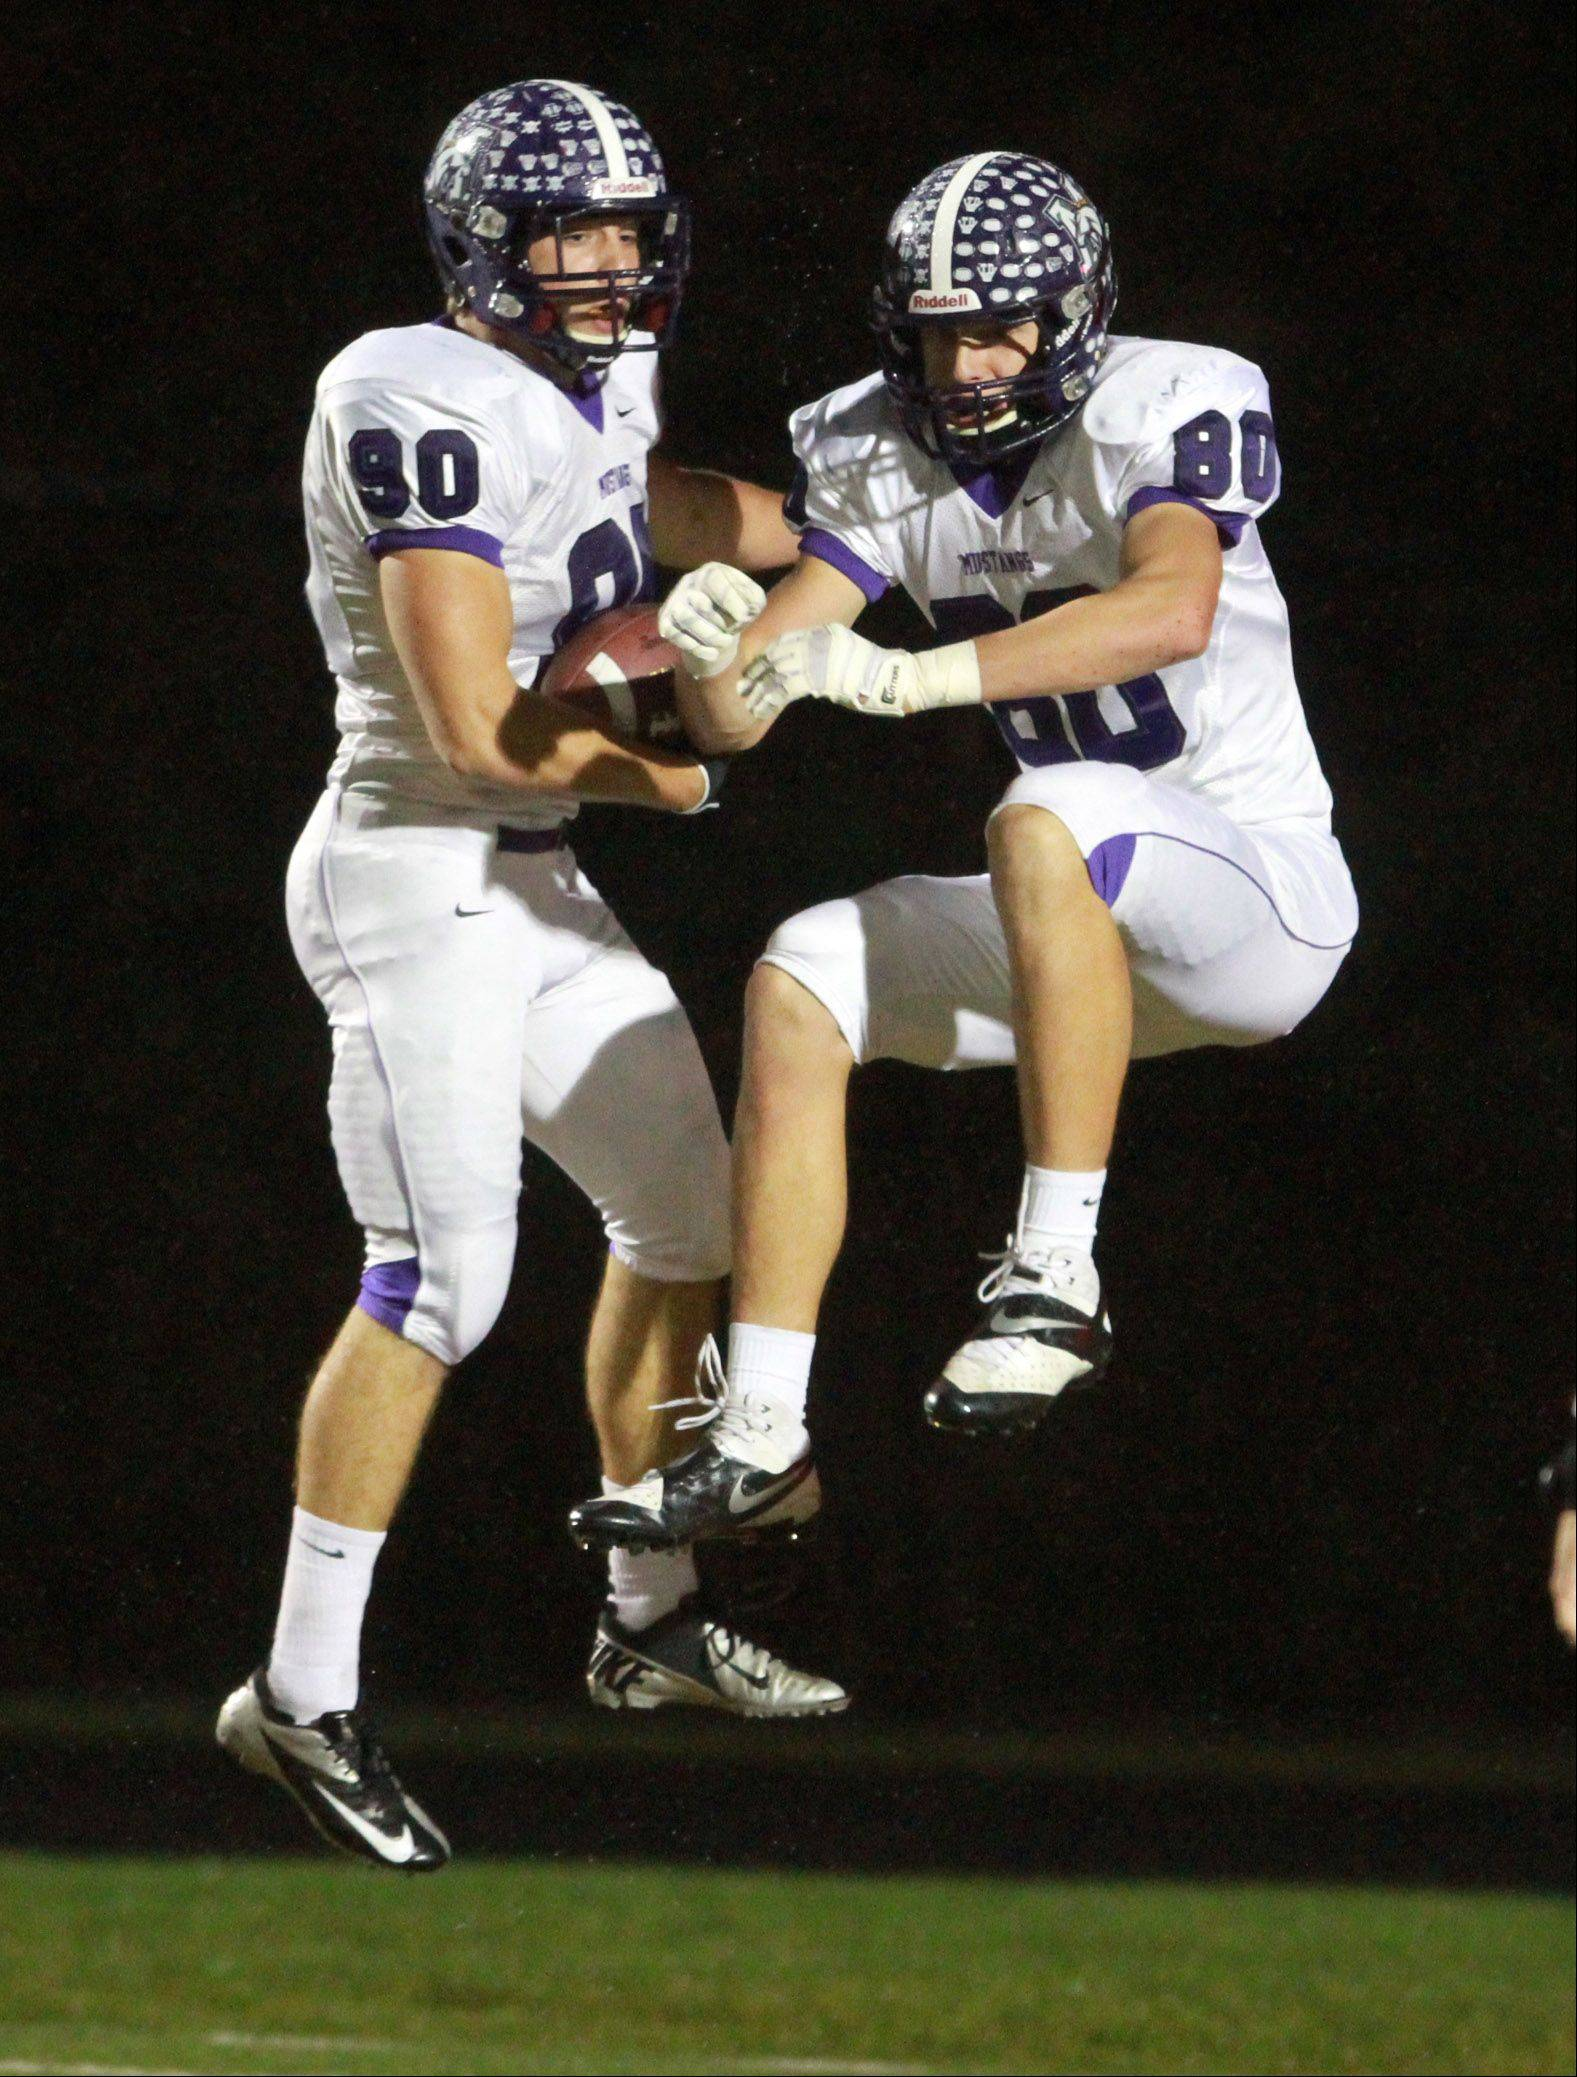 Rolling Meadows receiver Matt Campbell, left, celebrates scoring the first touchdown of the game against Grayslake North with teammate Matt Dolan in a Class 6A playoff opener at Grayslake North on Friday.